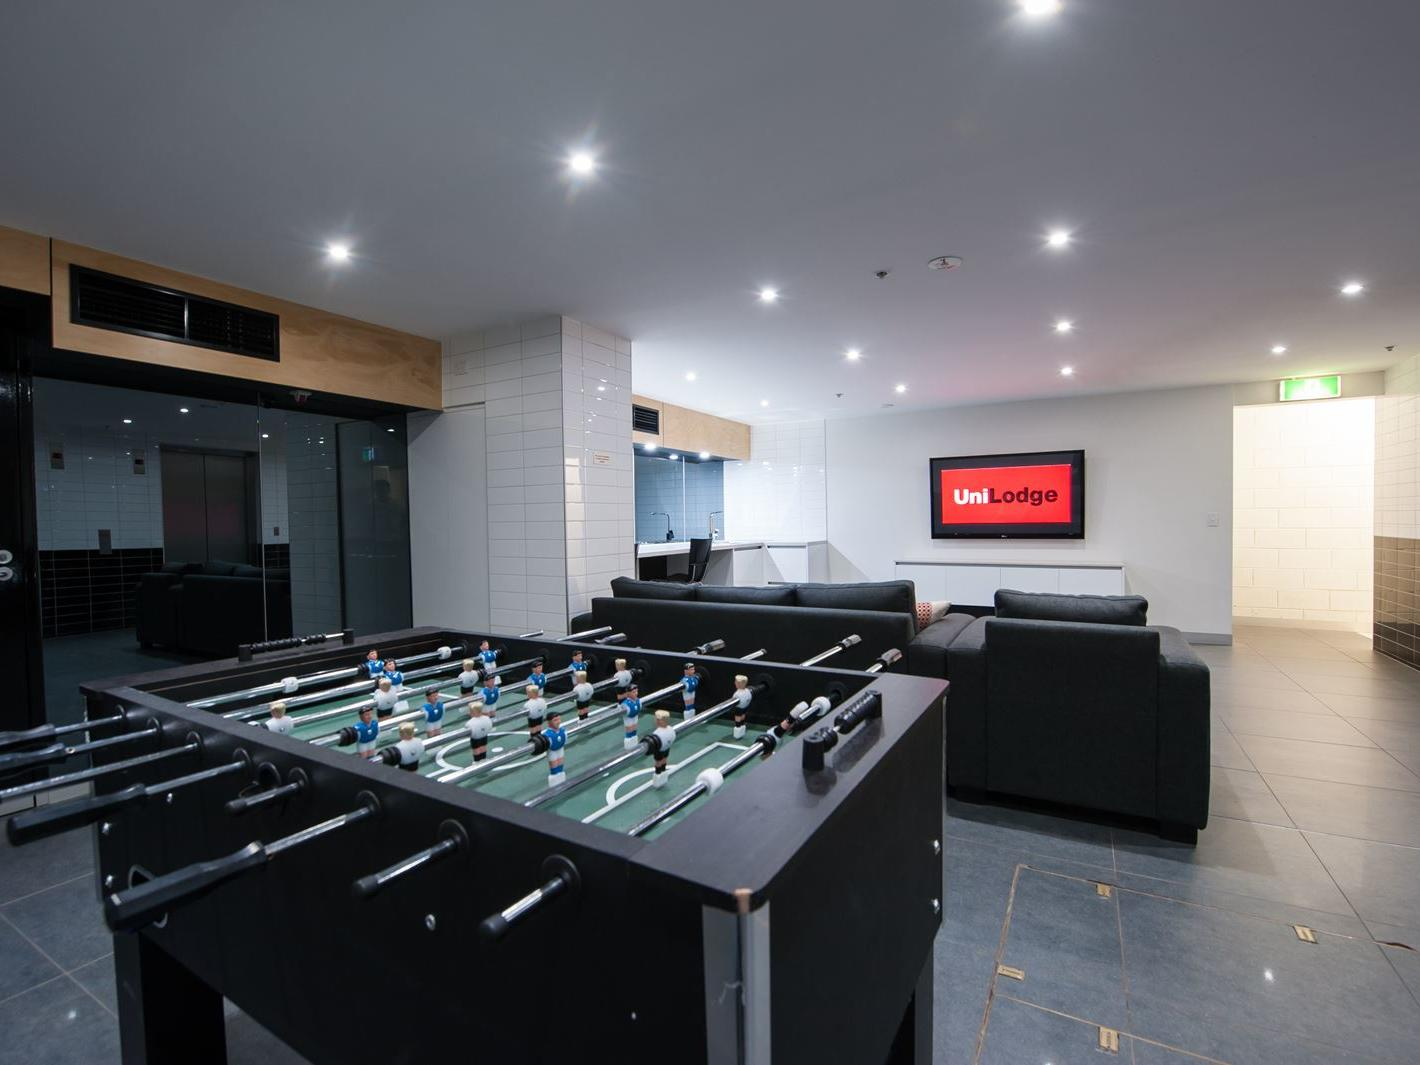 Recreation room for all residents to enjoy